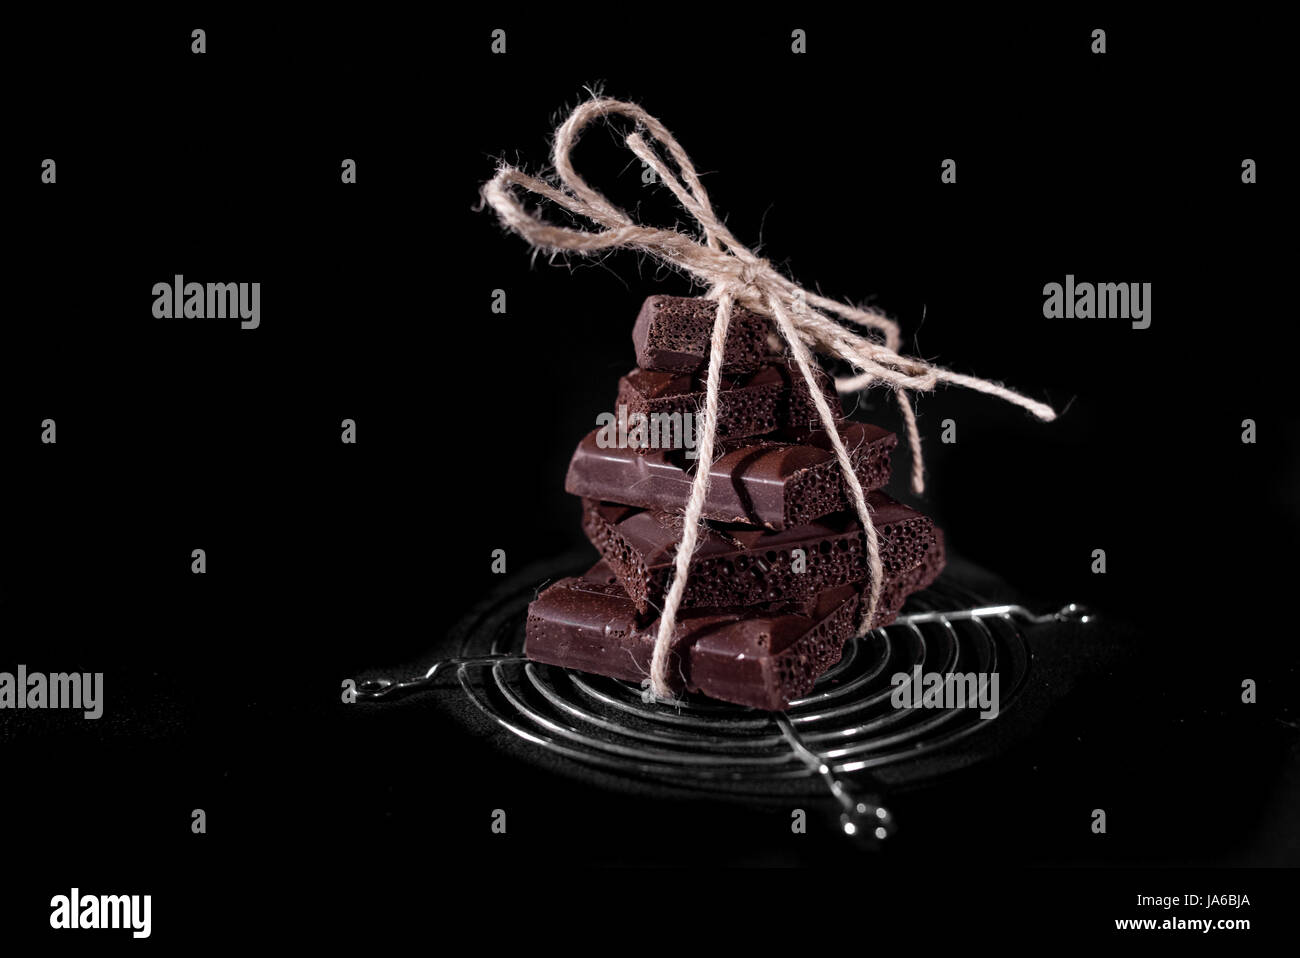 A stack of black pore chocolate tied with twine thread - Stock Image